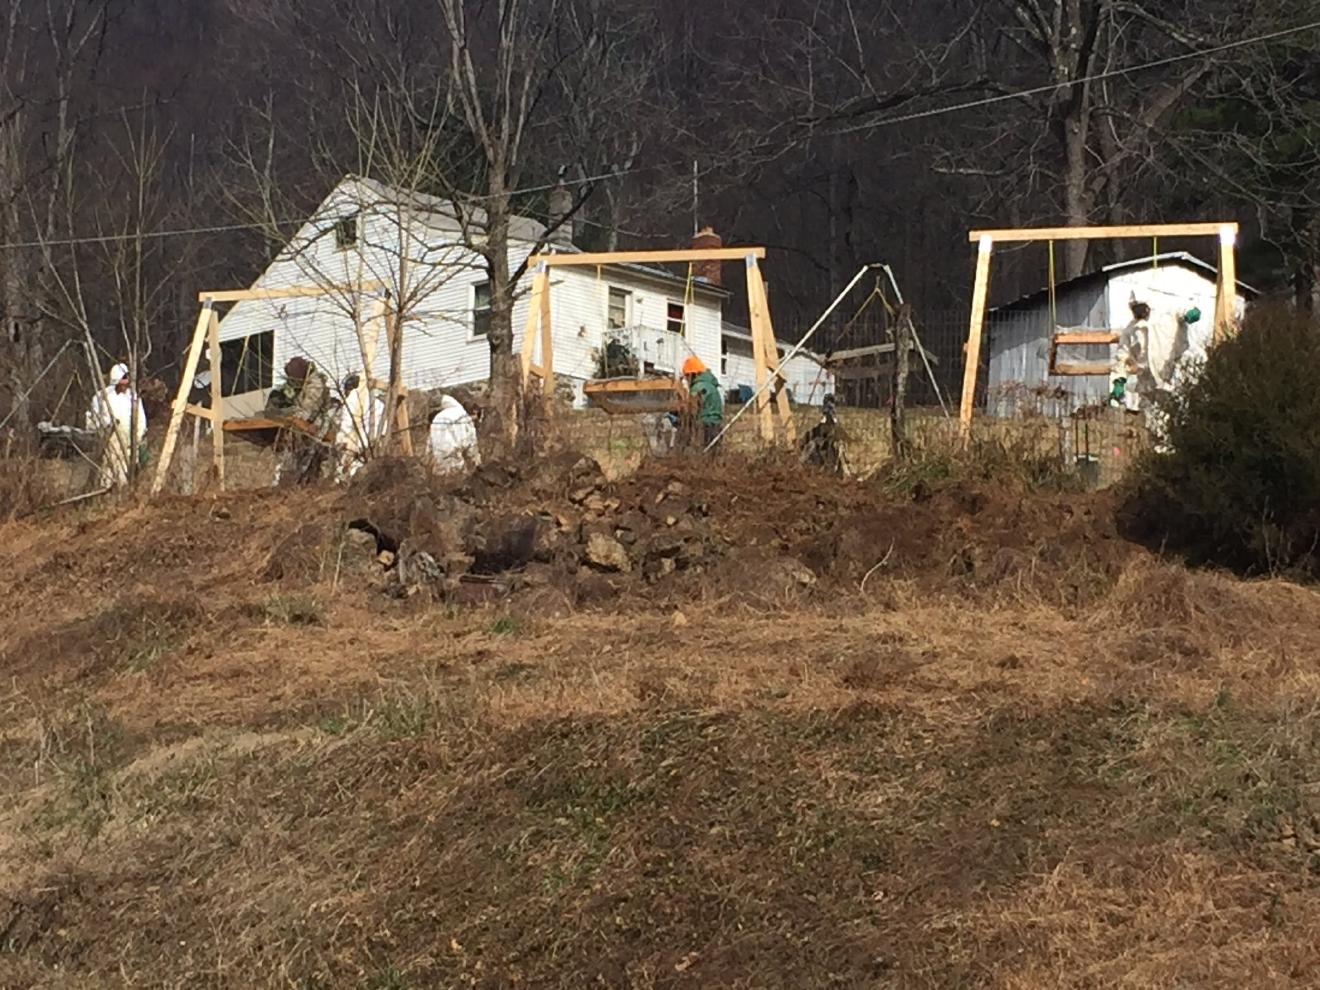 Bedford County authorities are sifting through dirt in area potentially linked to cold case of missing Lyons sisters (Photo: Valencia Jones)